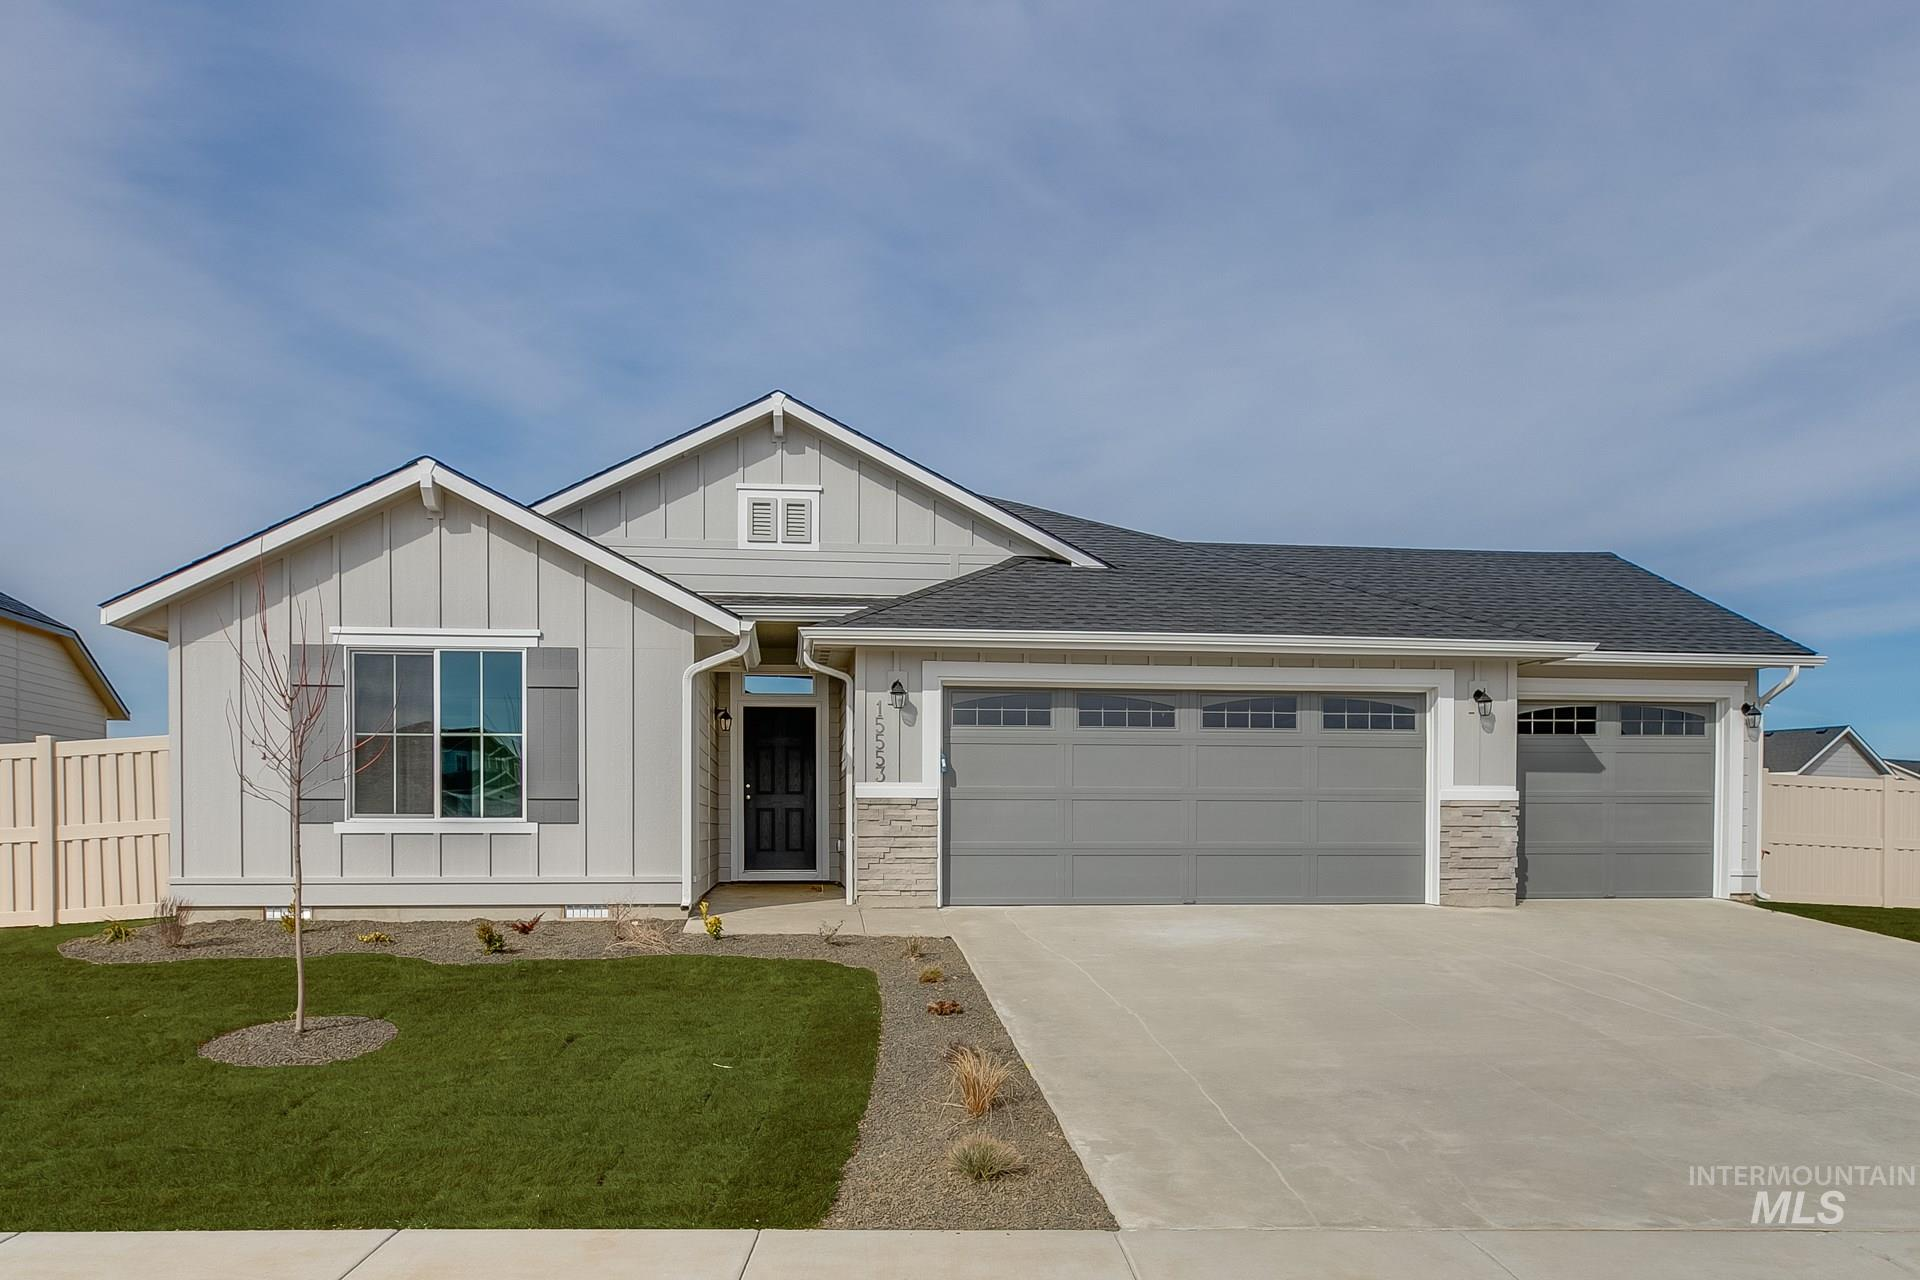 15410 Roseman Way Property Photo - Caldwell, ID real estate listing